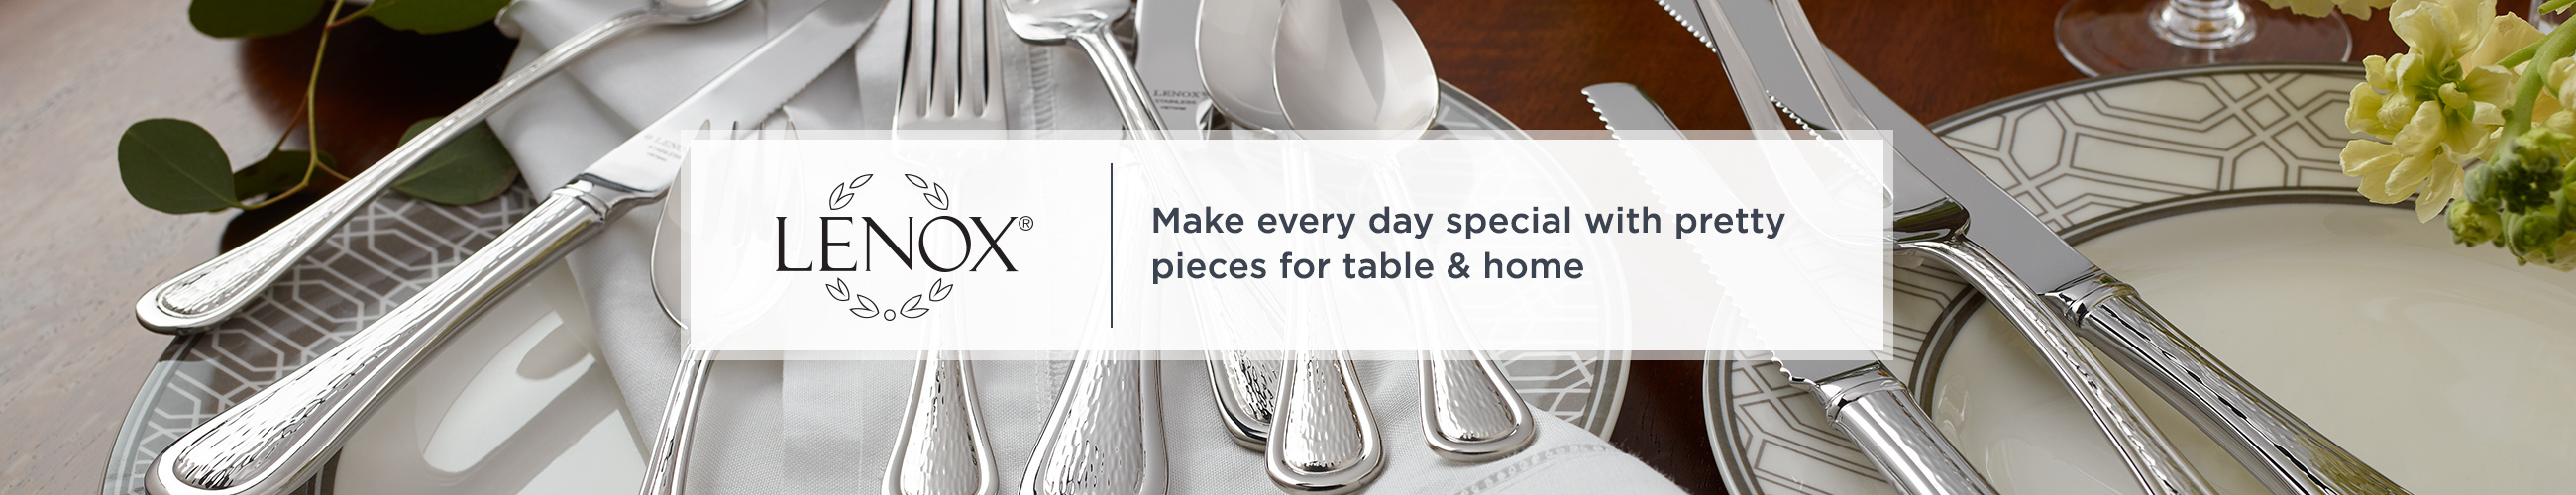 Make every day special with pretty pieces for table & home